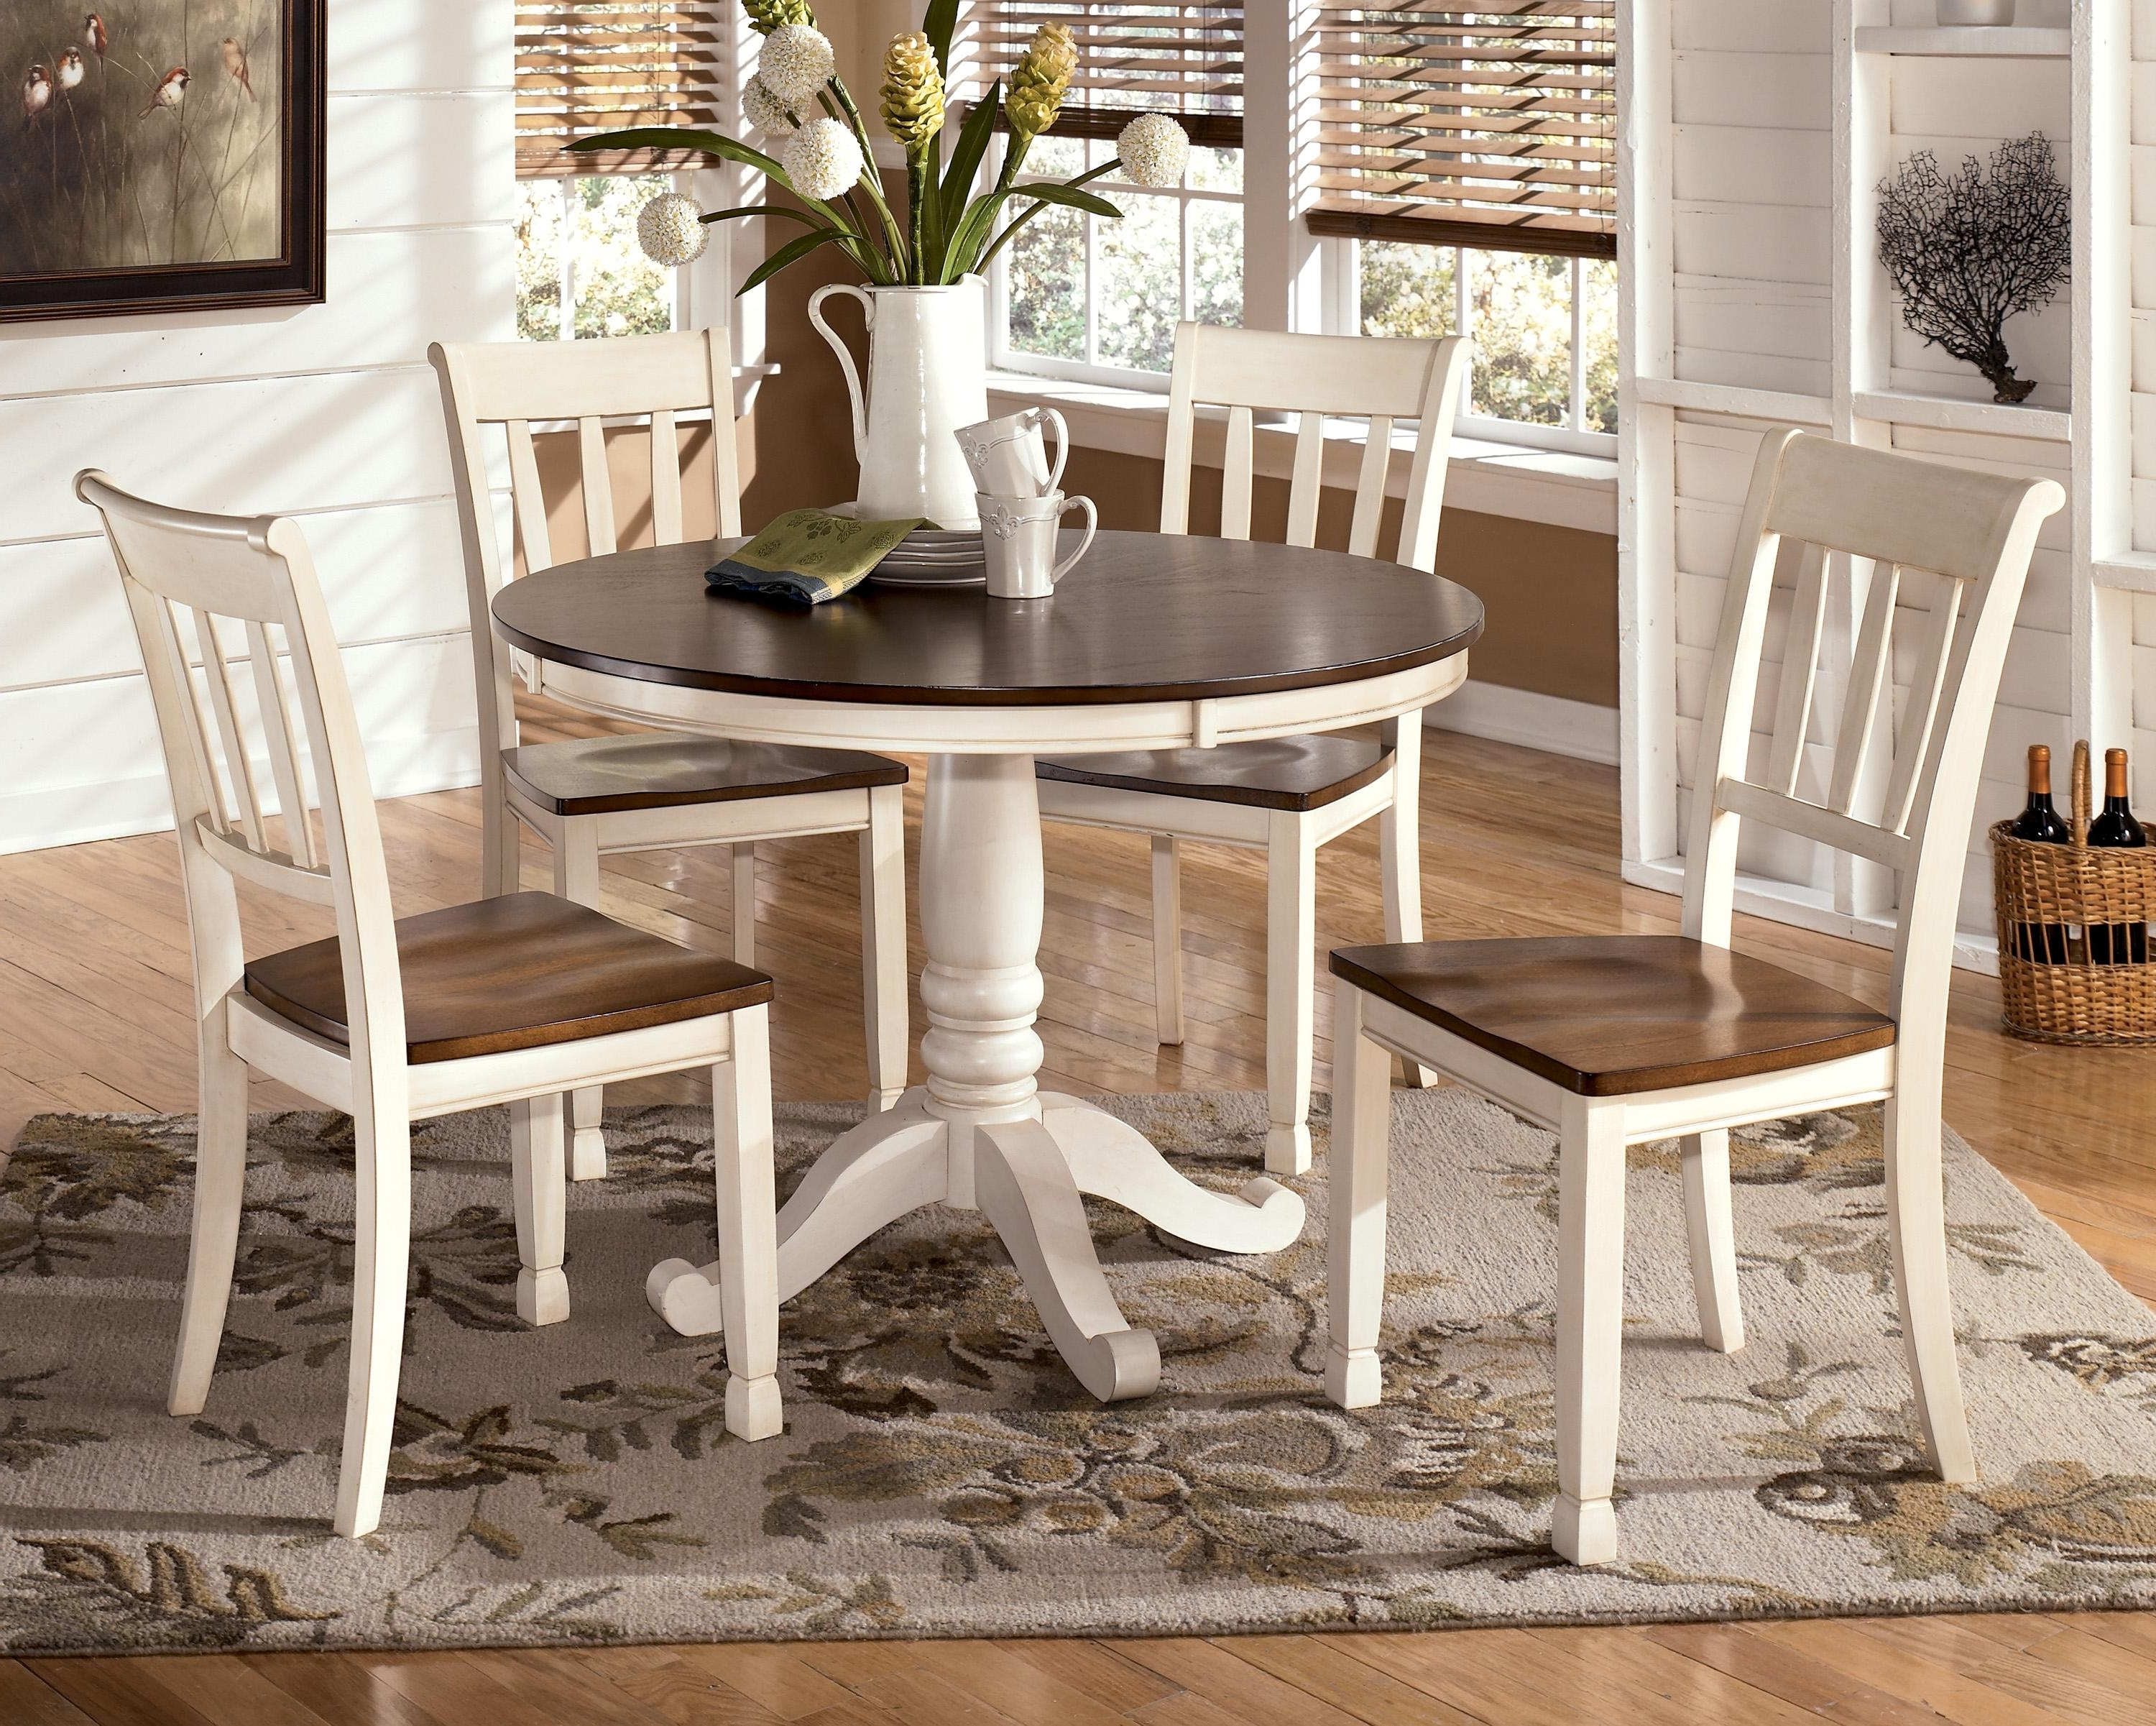 Dining In 2017 Dining Tables For Two (View 10 of 25)